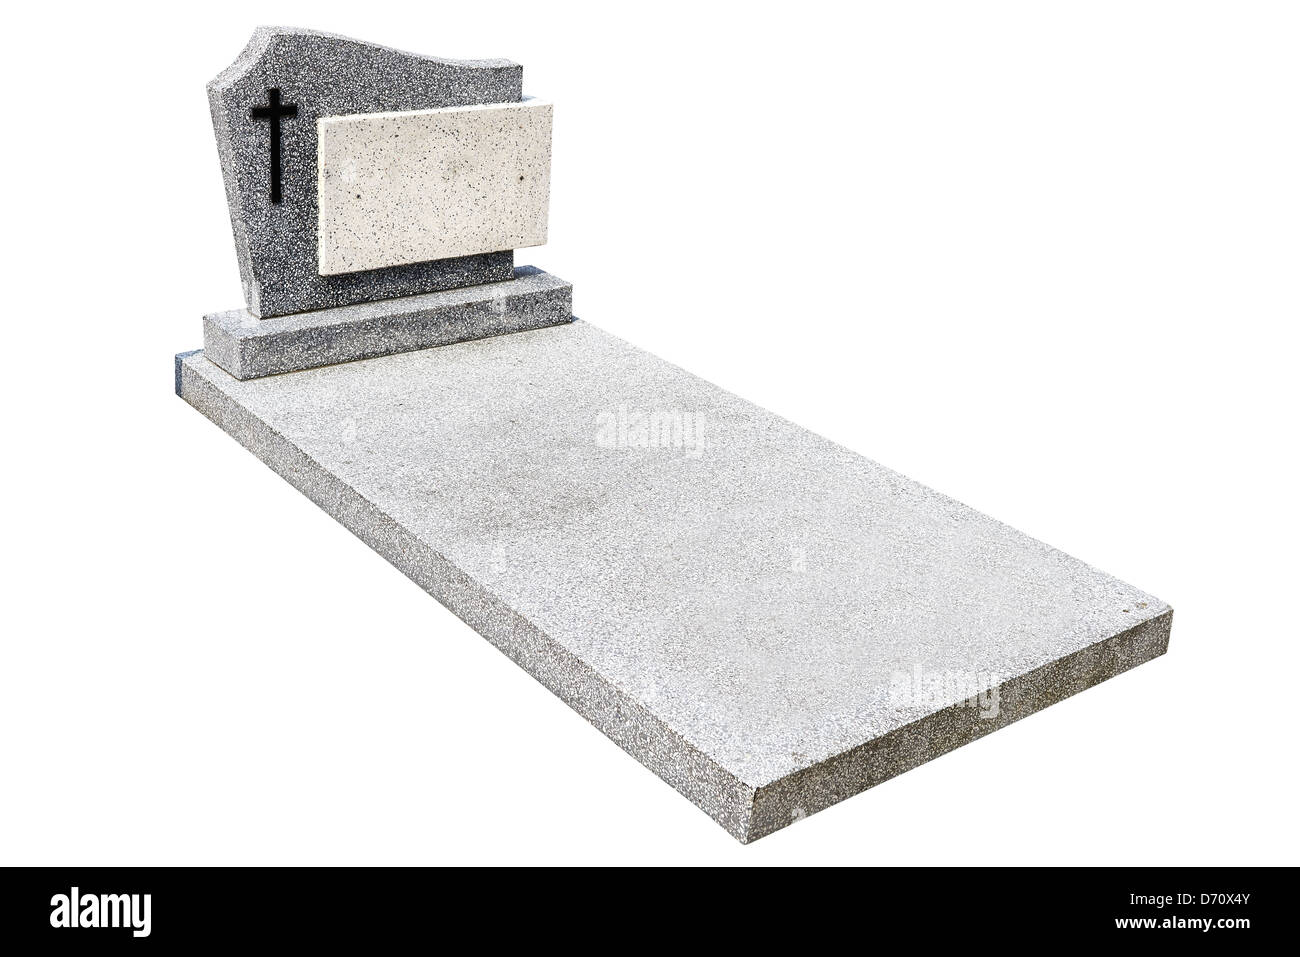 single grave stone cut out (Clipping path) - Stock Image